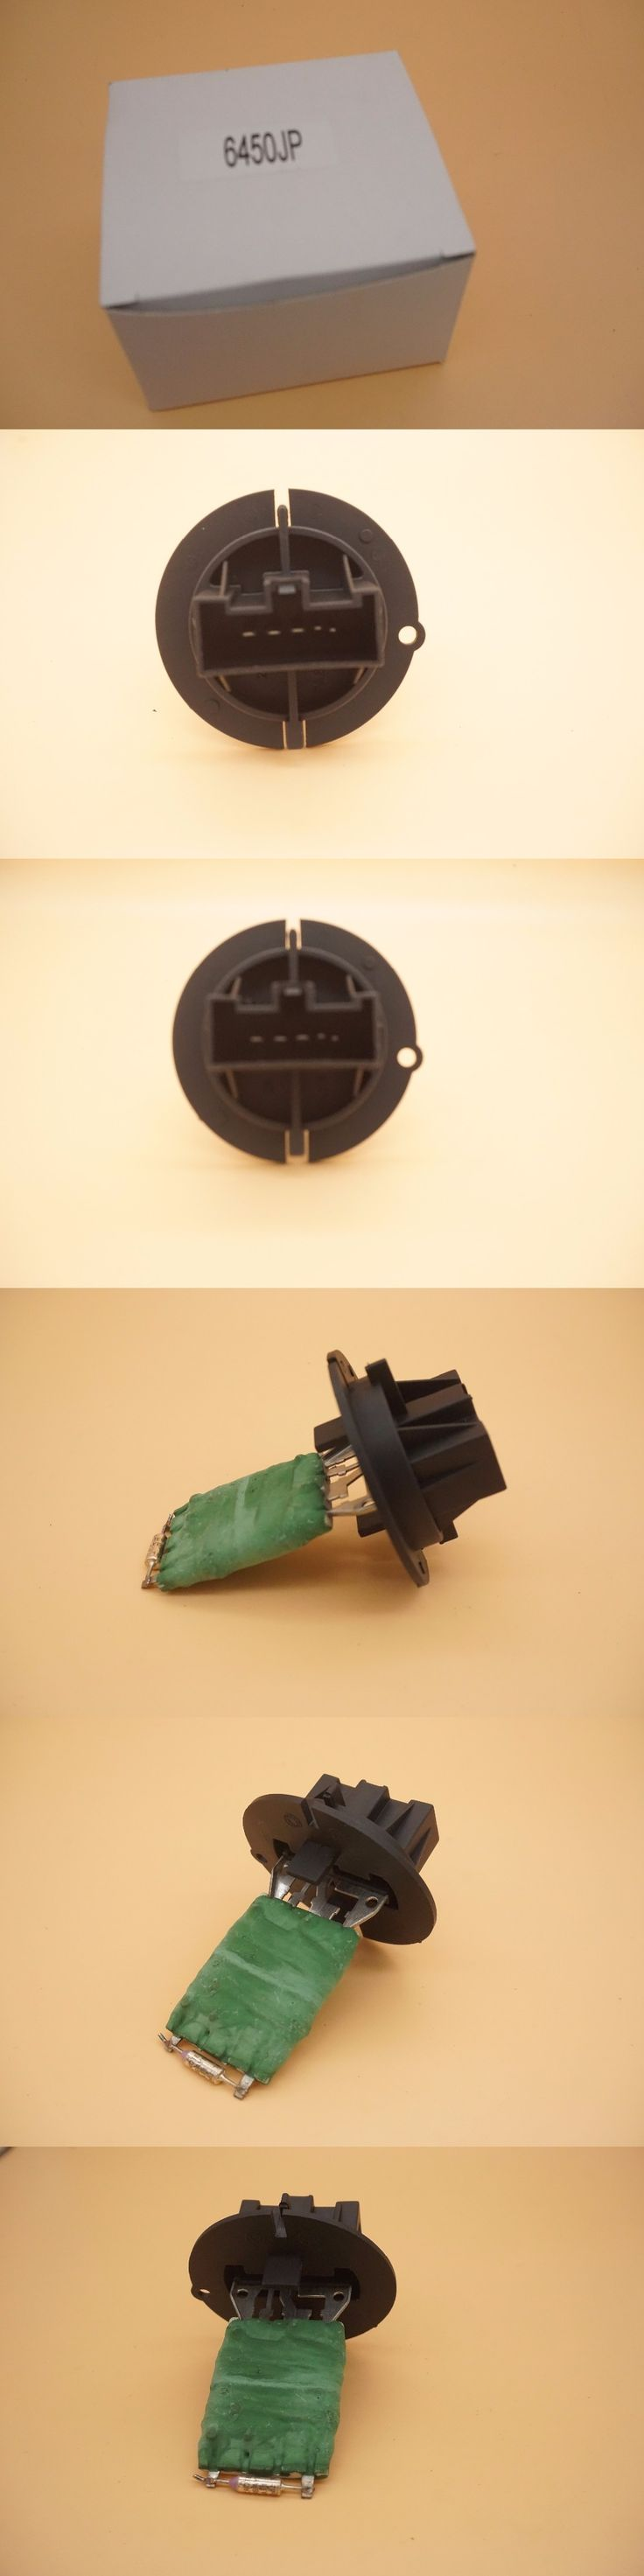 Heater Blower Motor Resistor For Peugeot 206 307 Citroen C3 IR15K R70K R35K 6450.JP 593230300 9636618080 6445KL 6445.KL